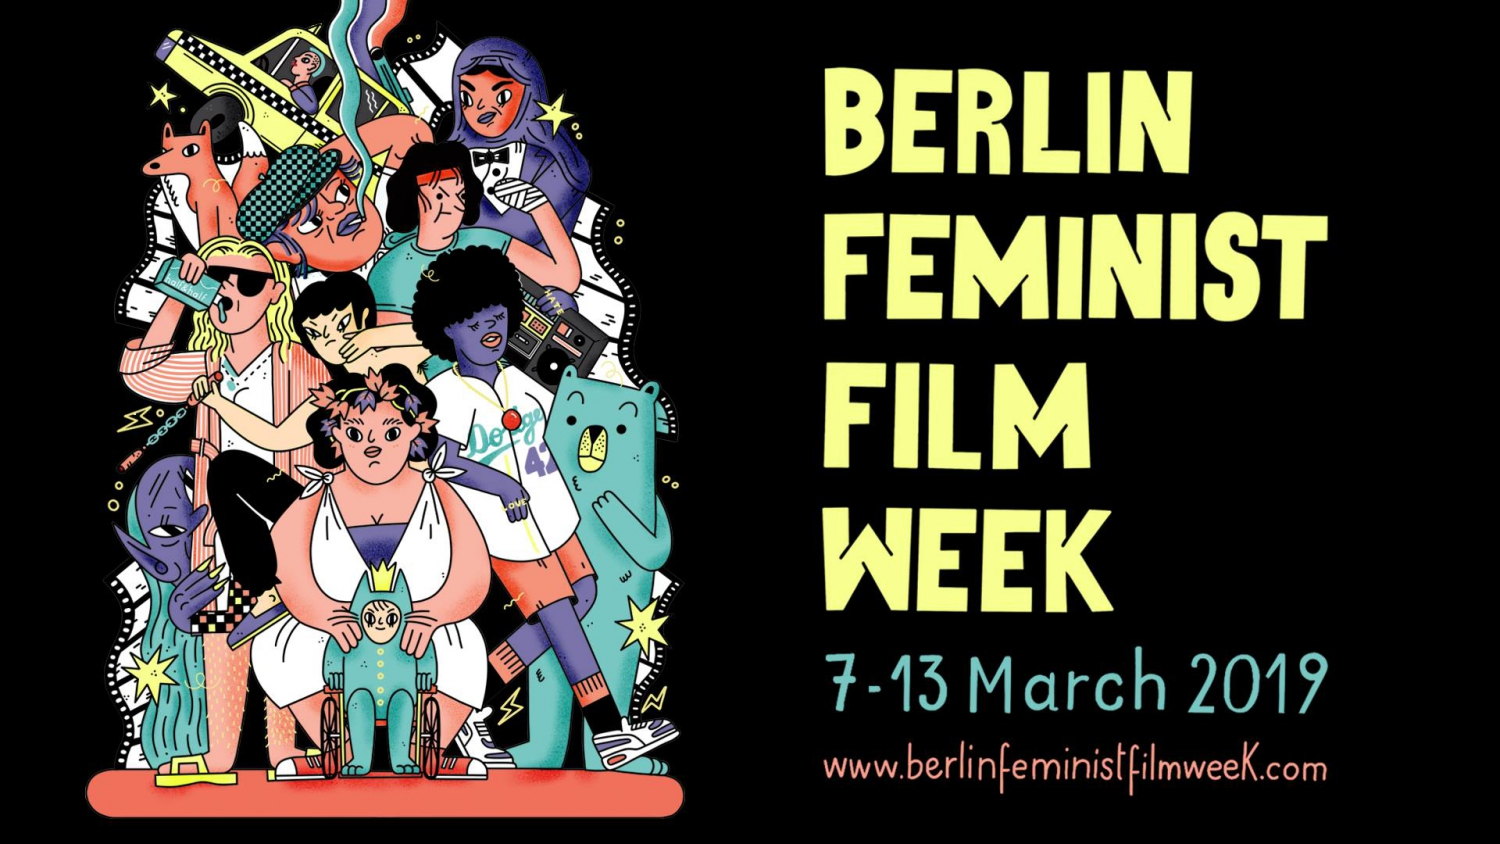 Berlin Feminist Film Week 2019